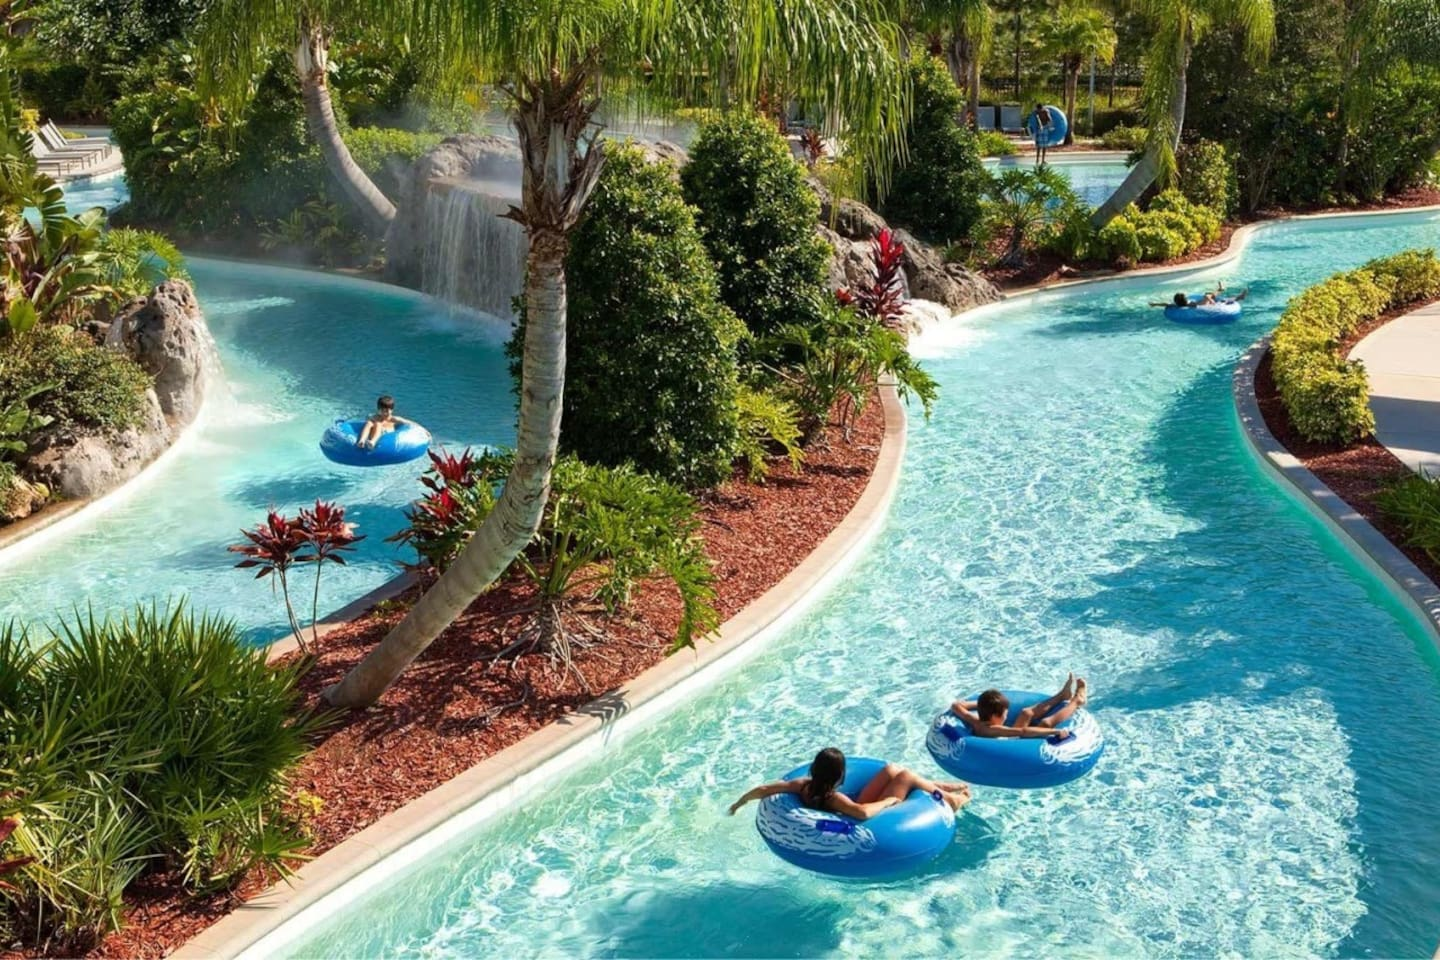 Float away on our neighborhood's Lazy River - just a short bike ride from the house